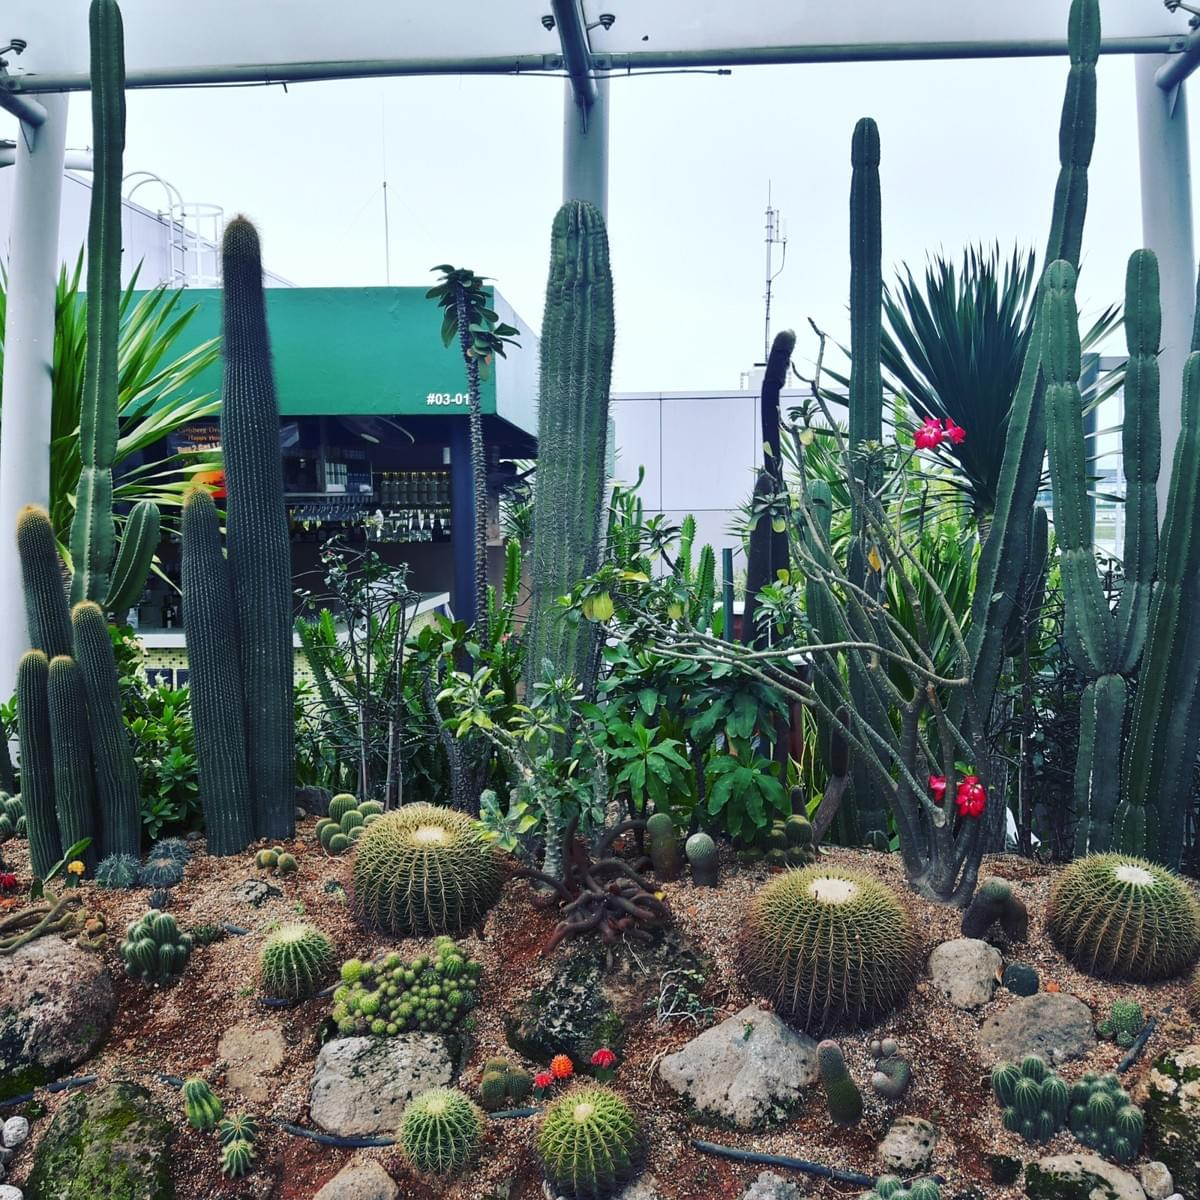 Cactus Garden at Changi International Airport, Make Most Of Your Transit Time At CHANGI Airport.